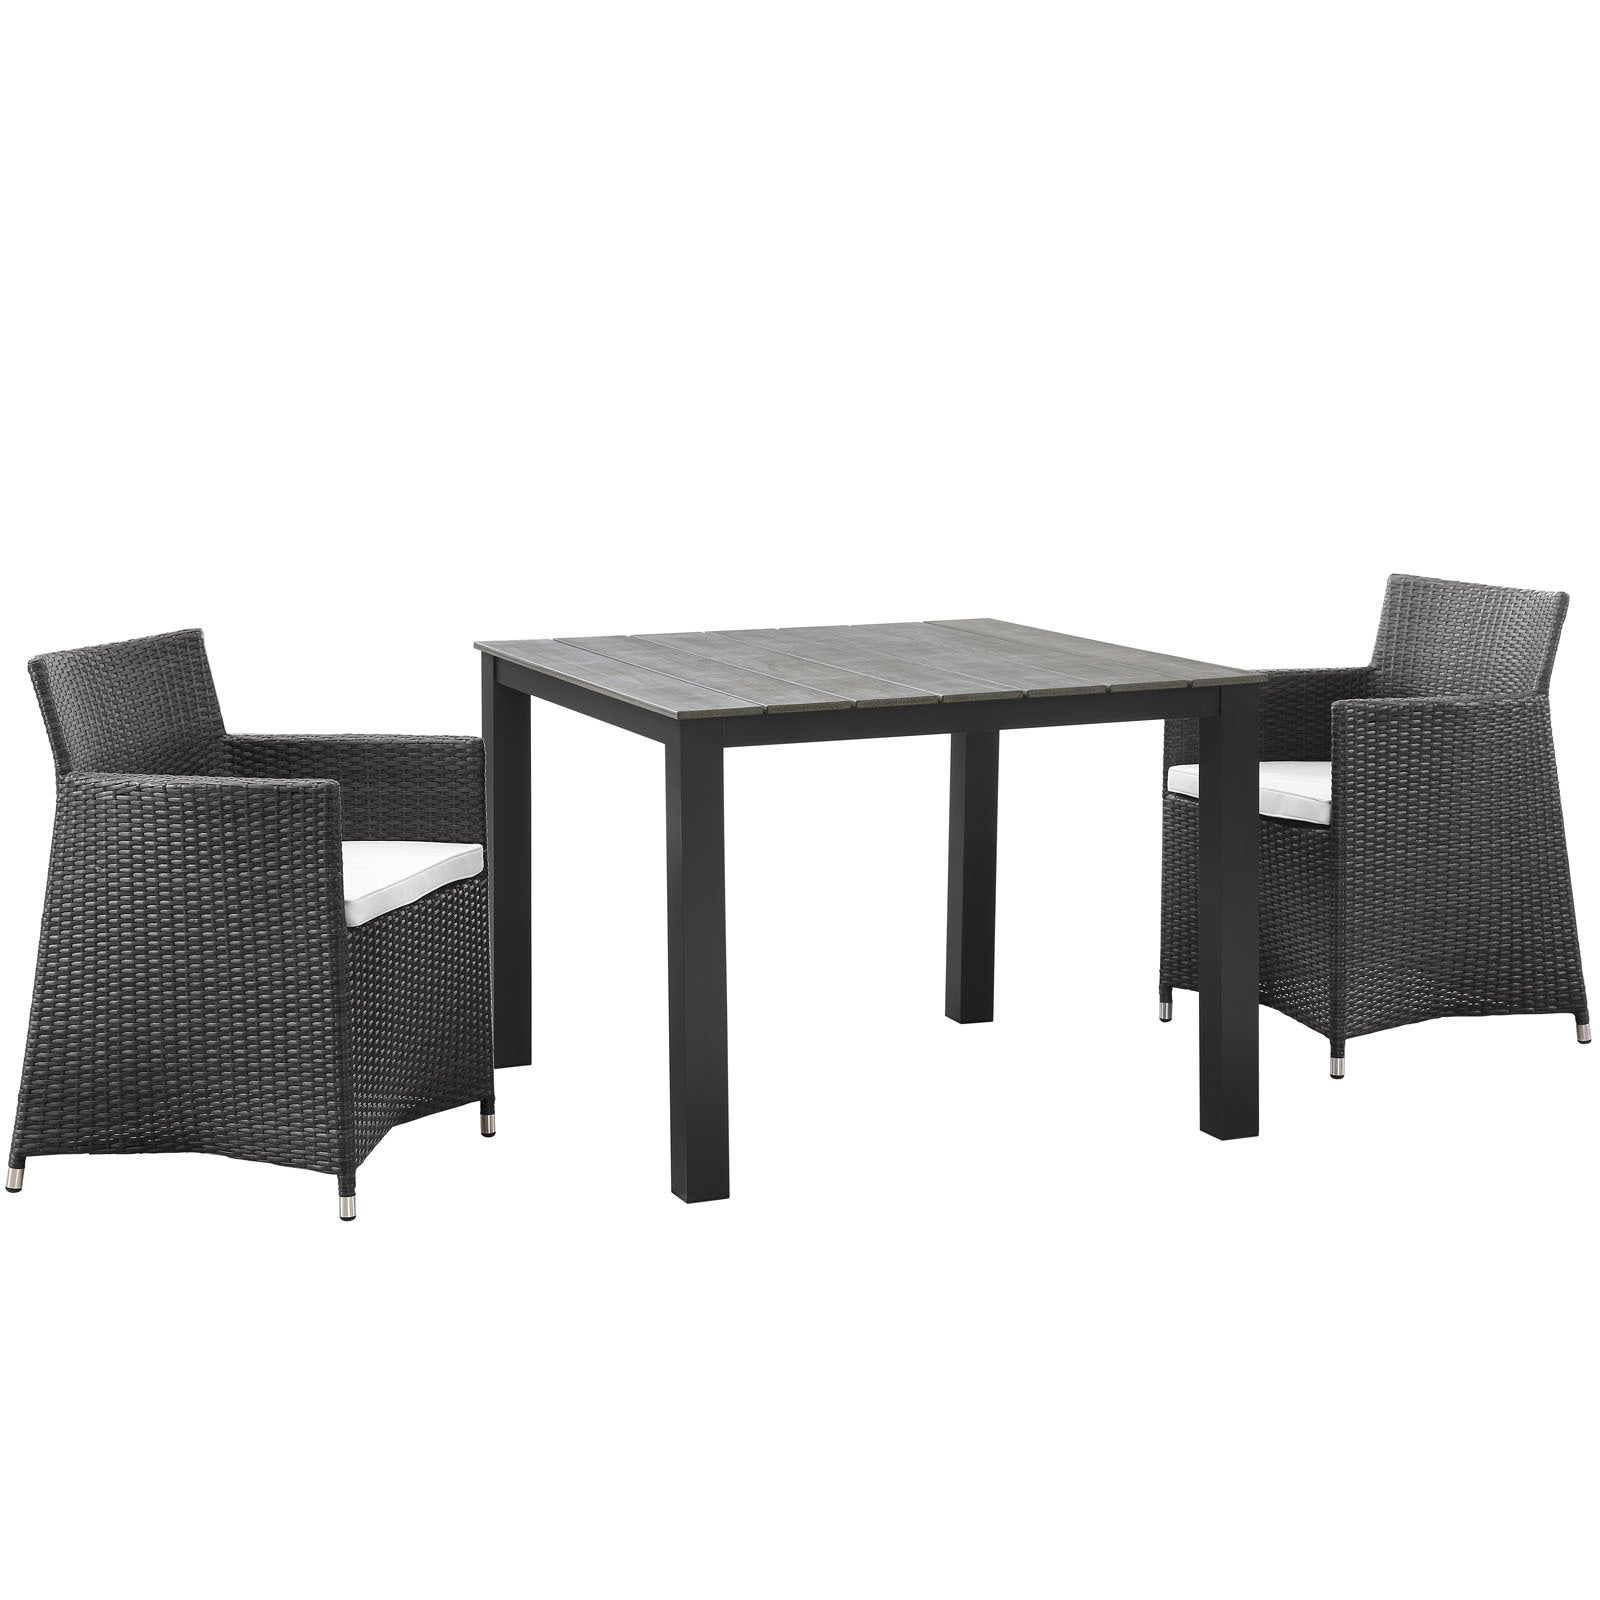 Modway Juncture 3-piece Outdoor Patio Wicker Dining Set (...